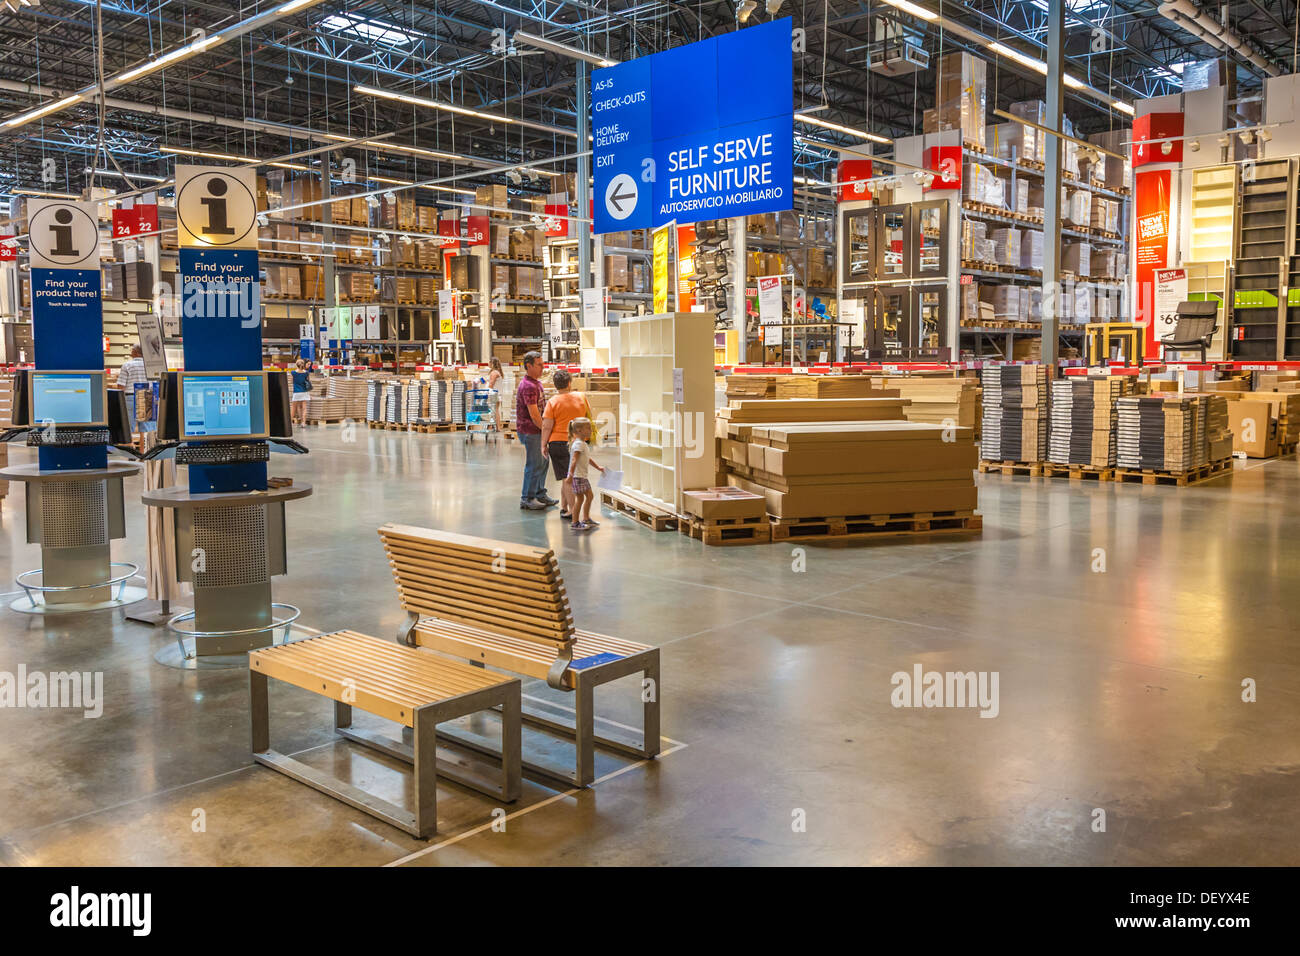 customers inside warehouse part of ikea home store stock photo 60849502 alamy. Black Bedroom Furniture Sets. Home Design Ideas